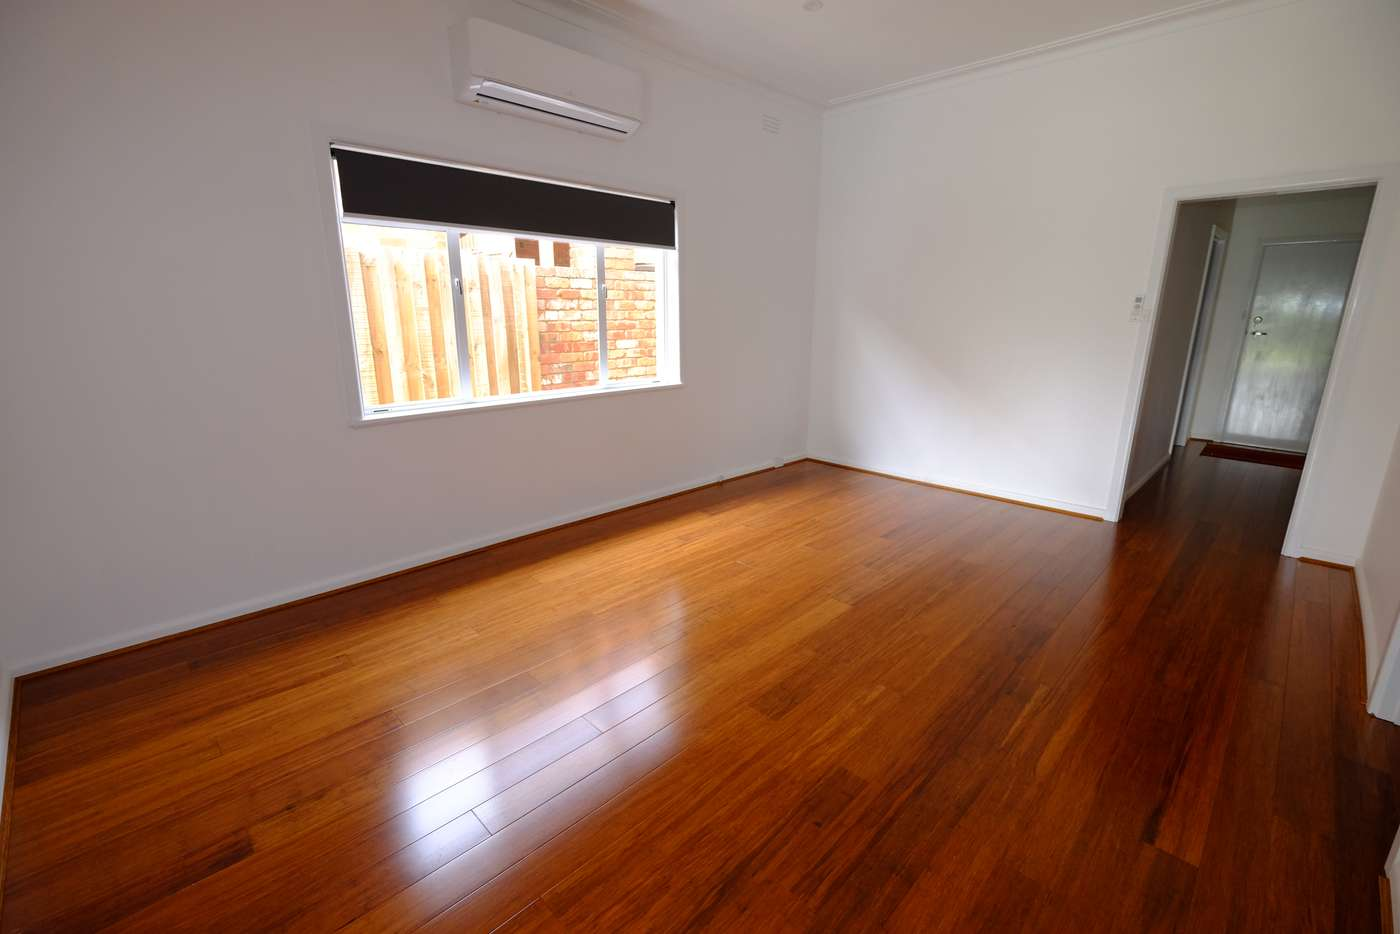 Sixth view of Homely house listing, 42 Harold Street, Thornbury VIC 3071